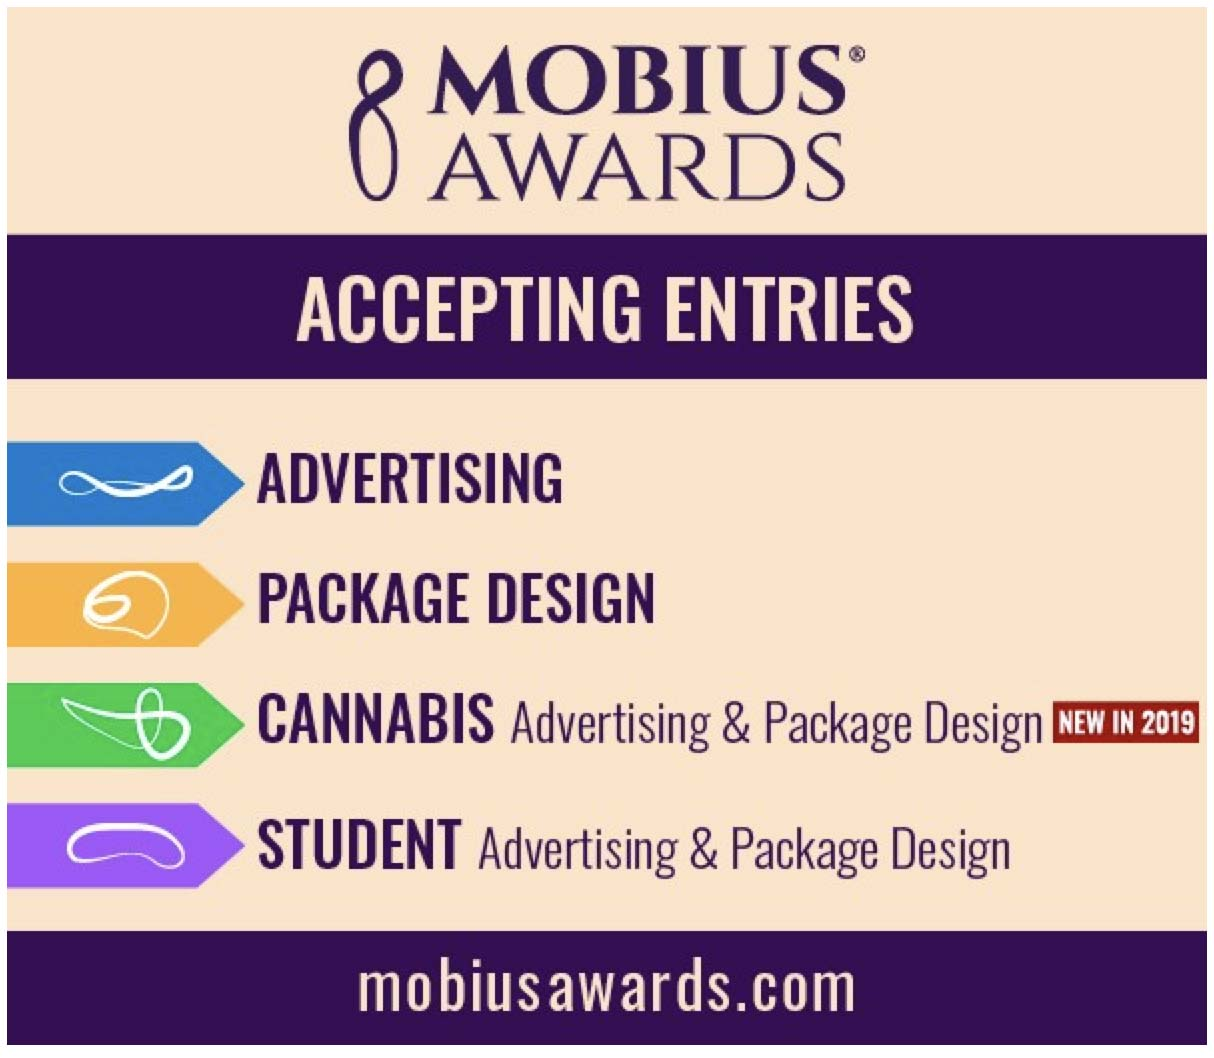 Mobius Awards advertising competition call for entries closes TODAY Tuesday October 1